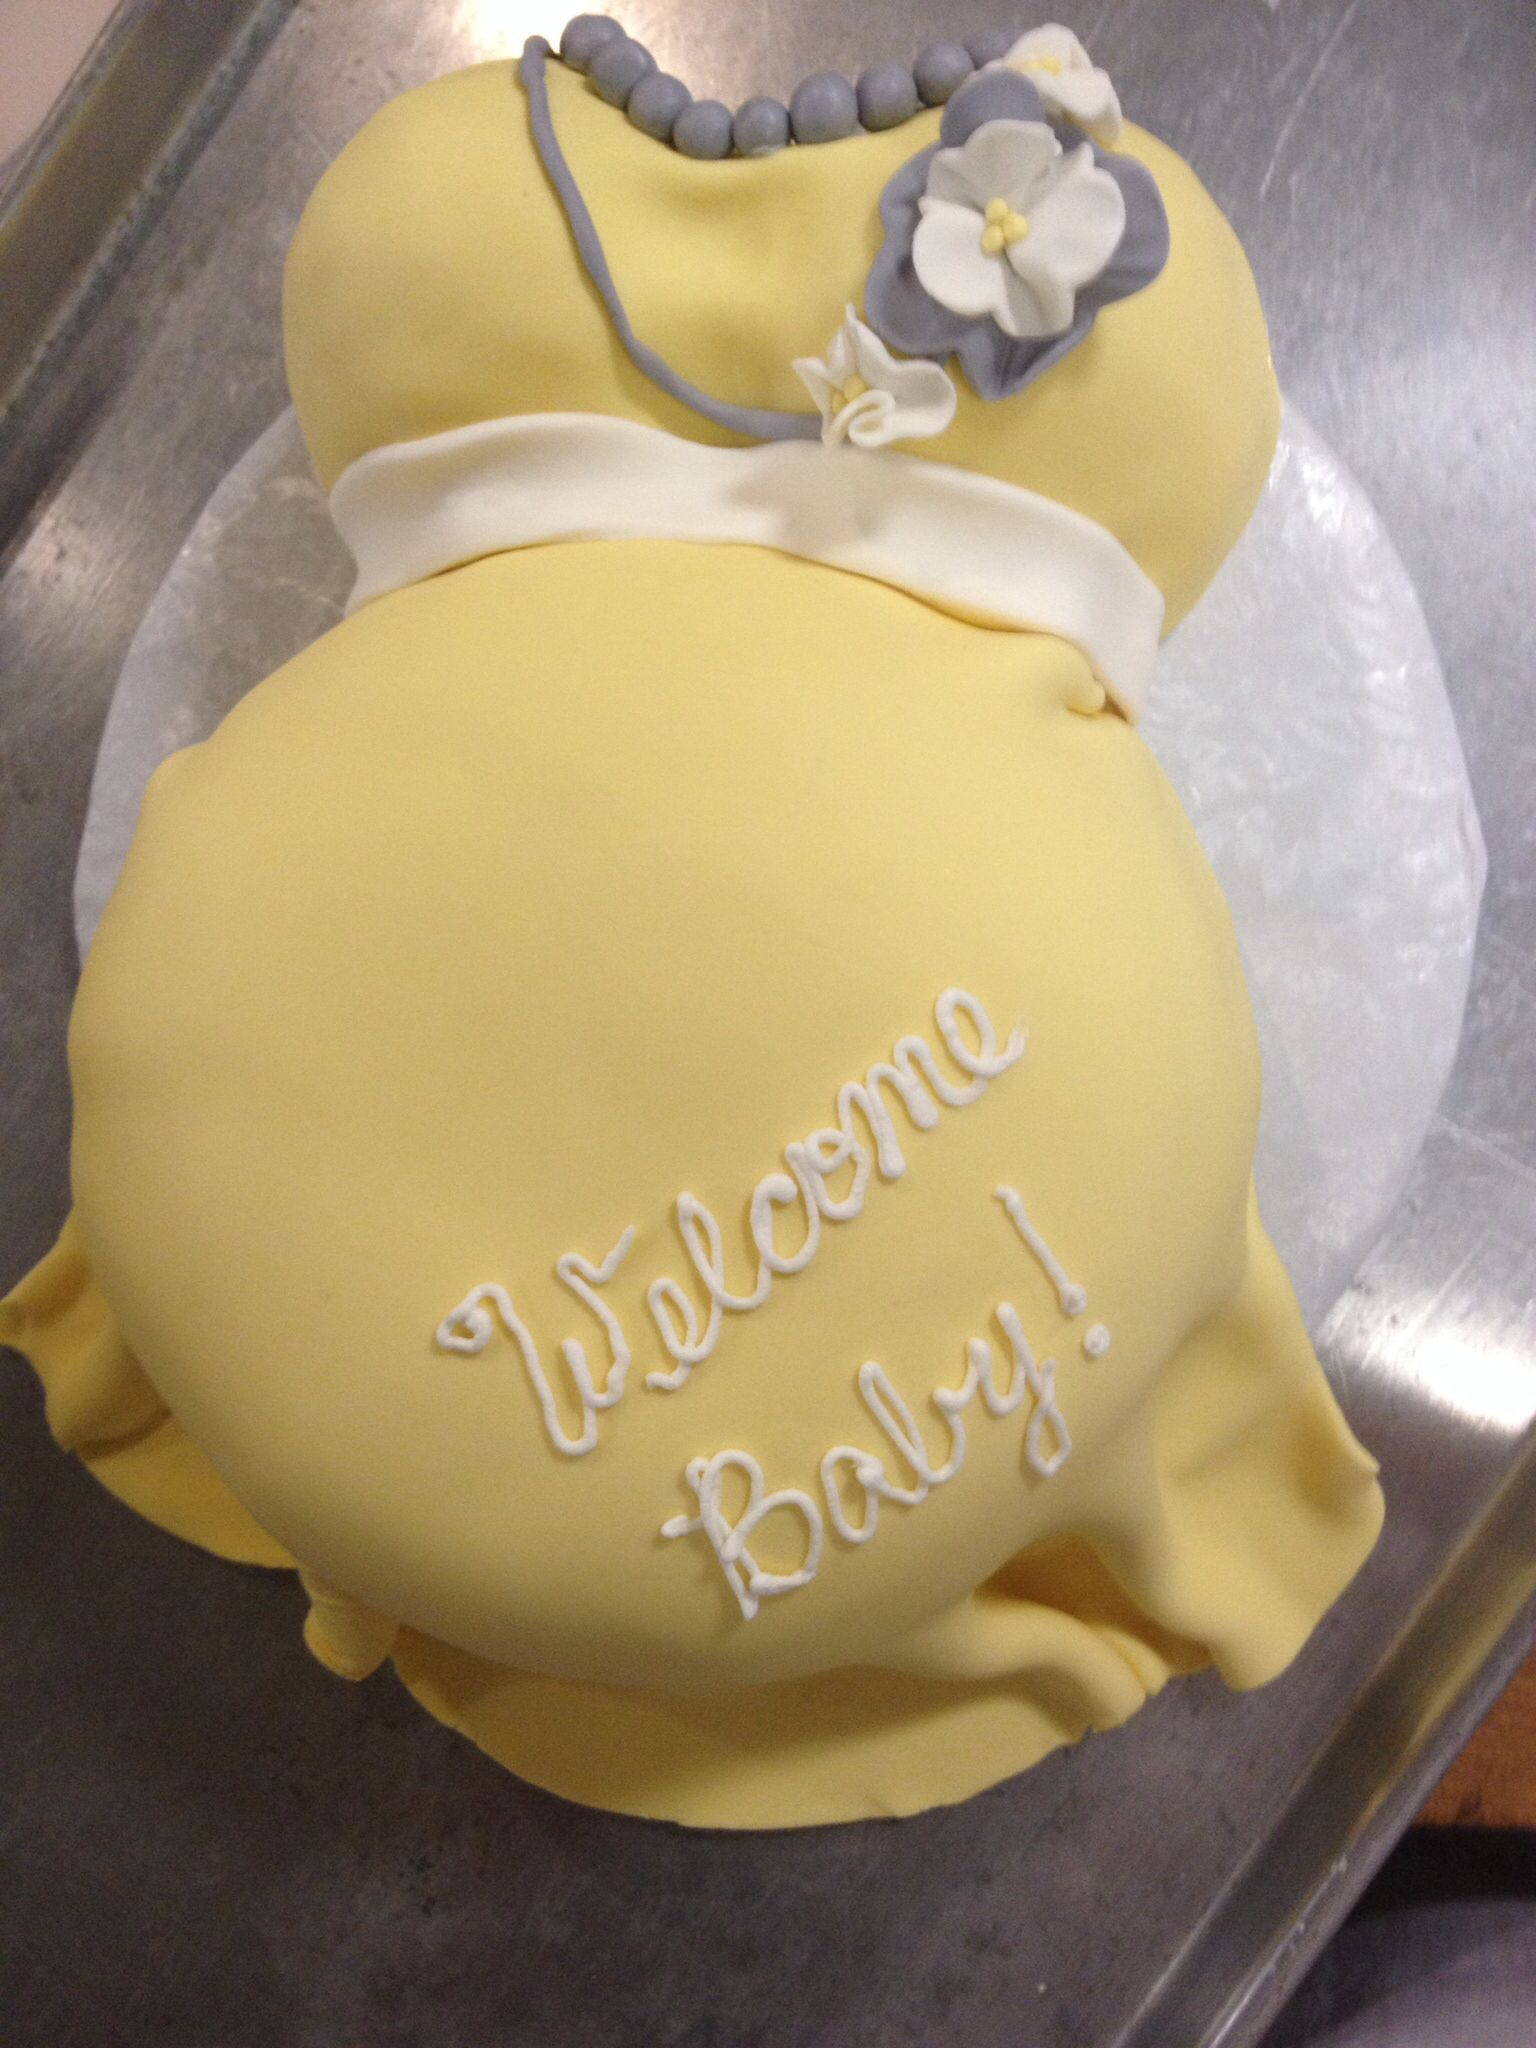 Gender neutral baby shower ideas - Find This Pin And More On Baby Shower Check Out Our Gender Neutral Baby Shower Ideas